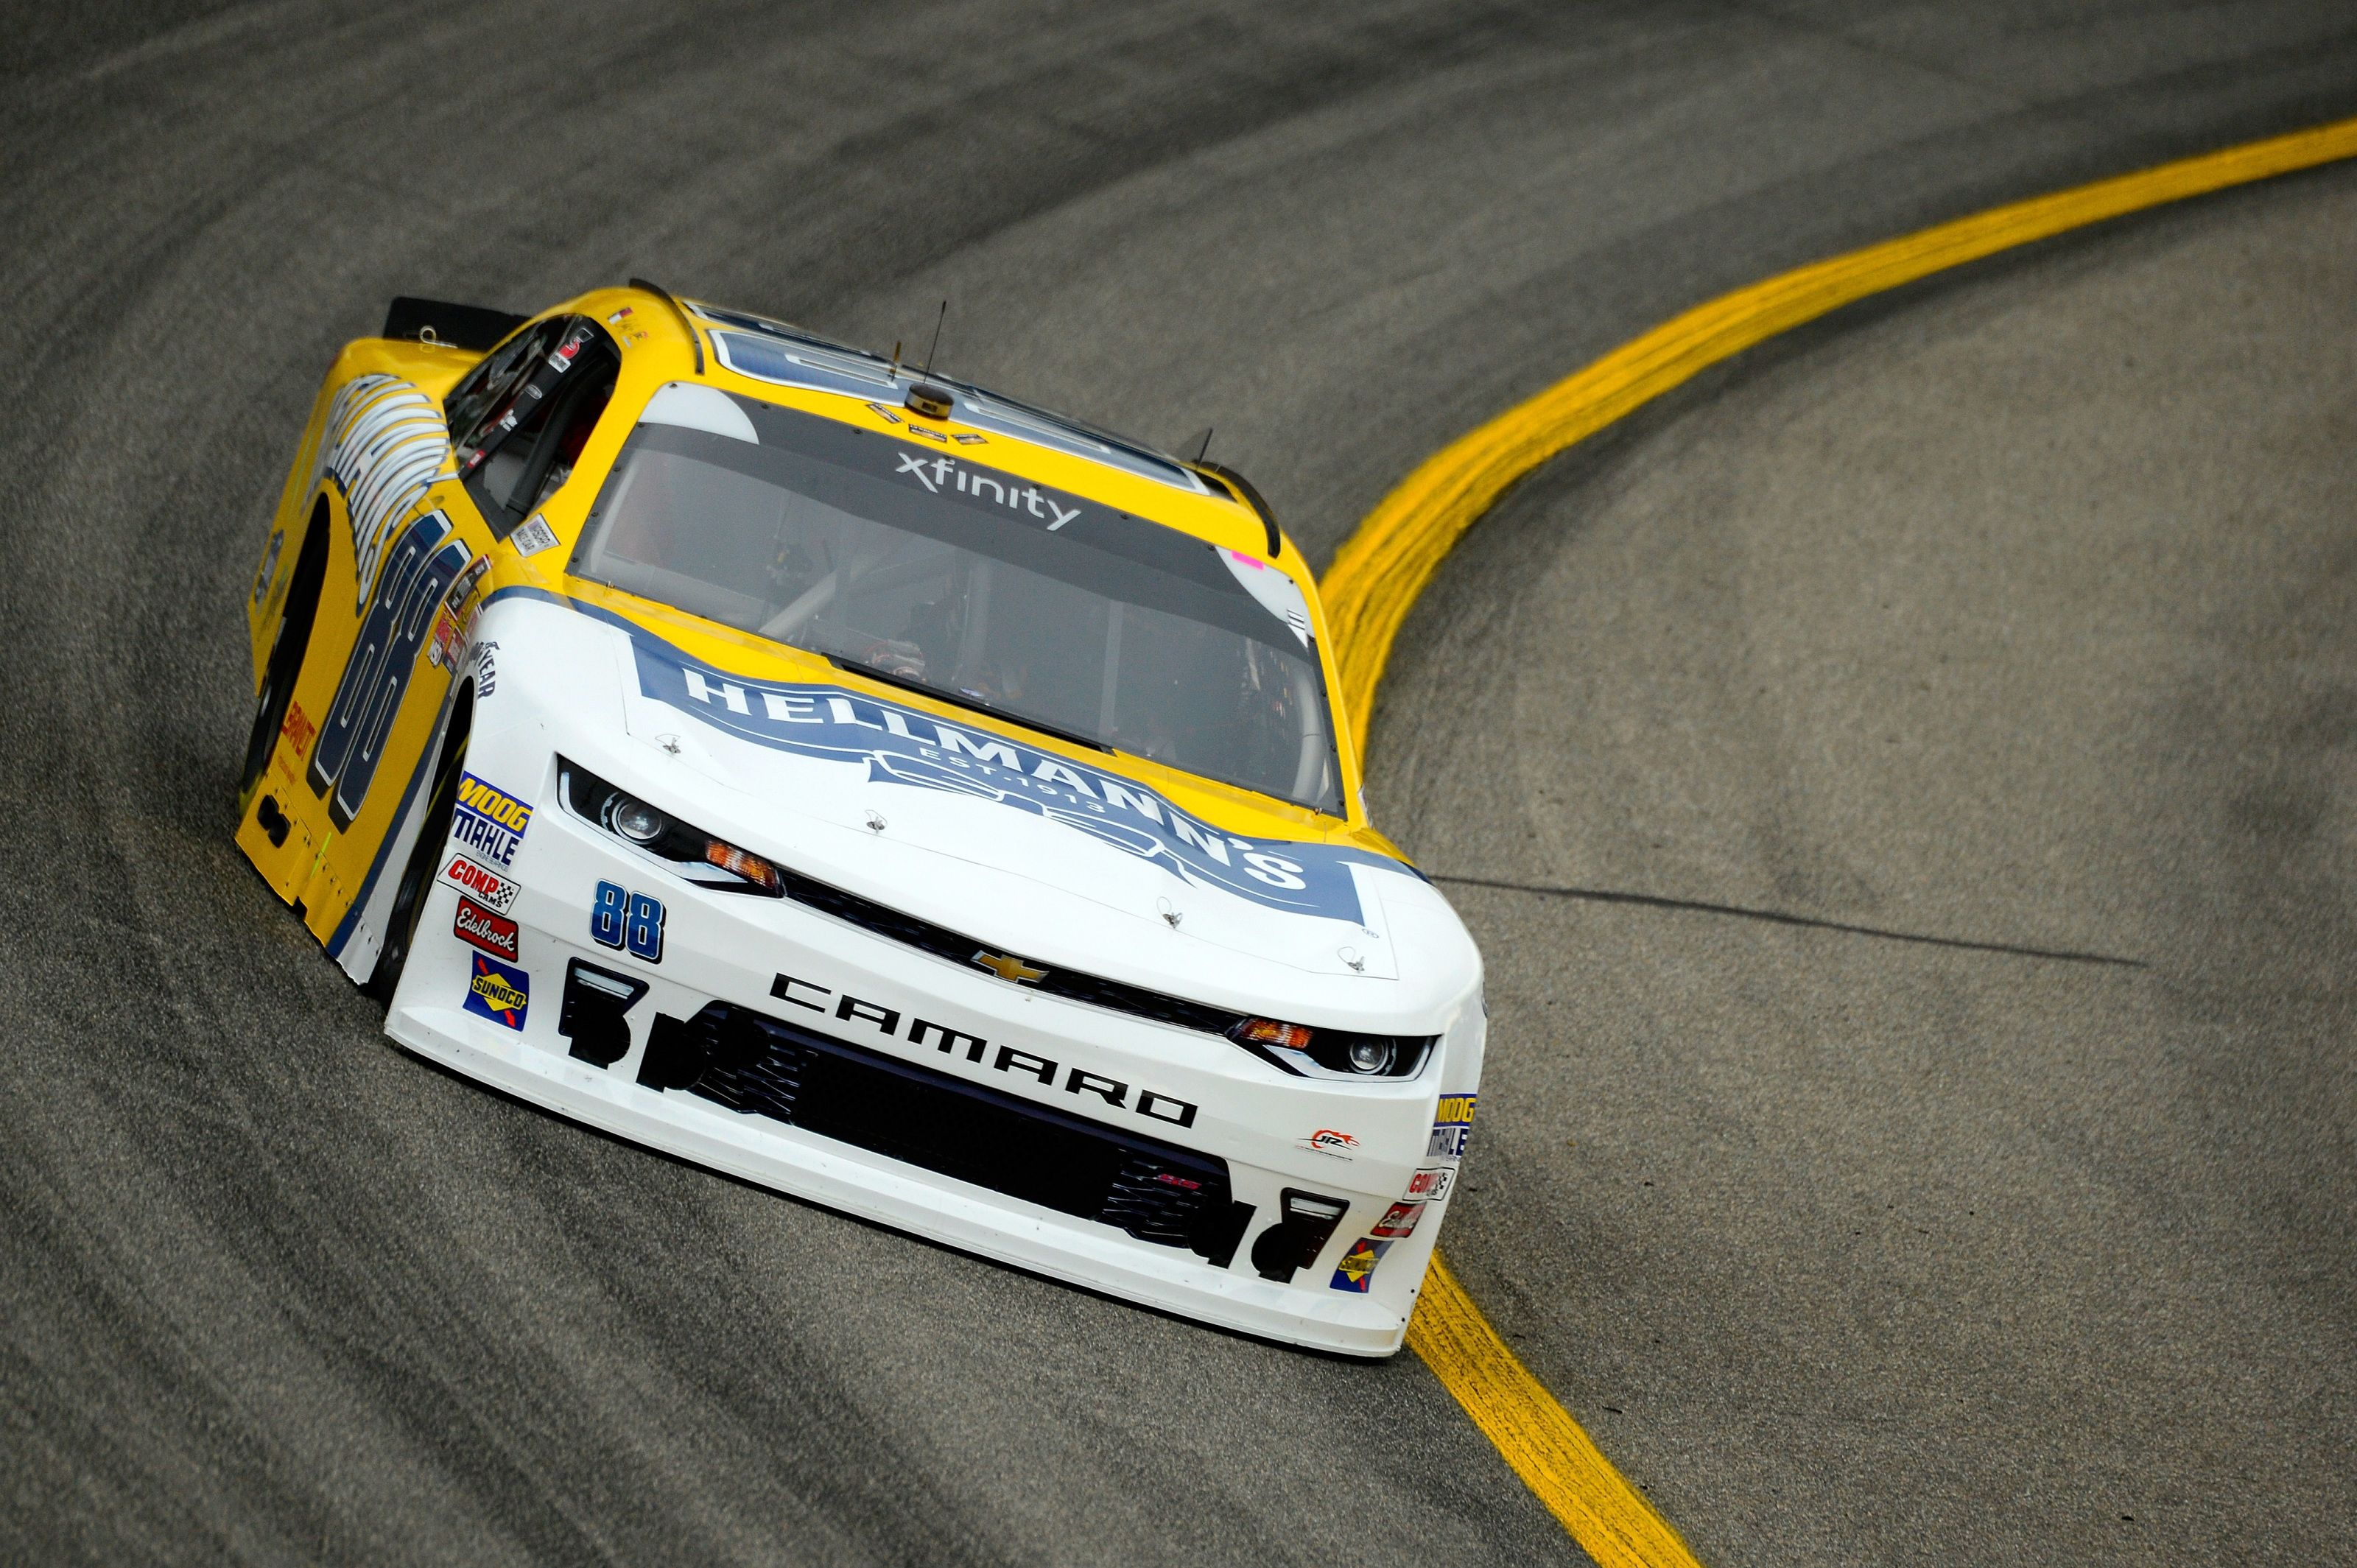 Earnhardt name back in NASCAR for 46th consecutive year – Beyond the Flag